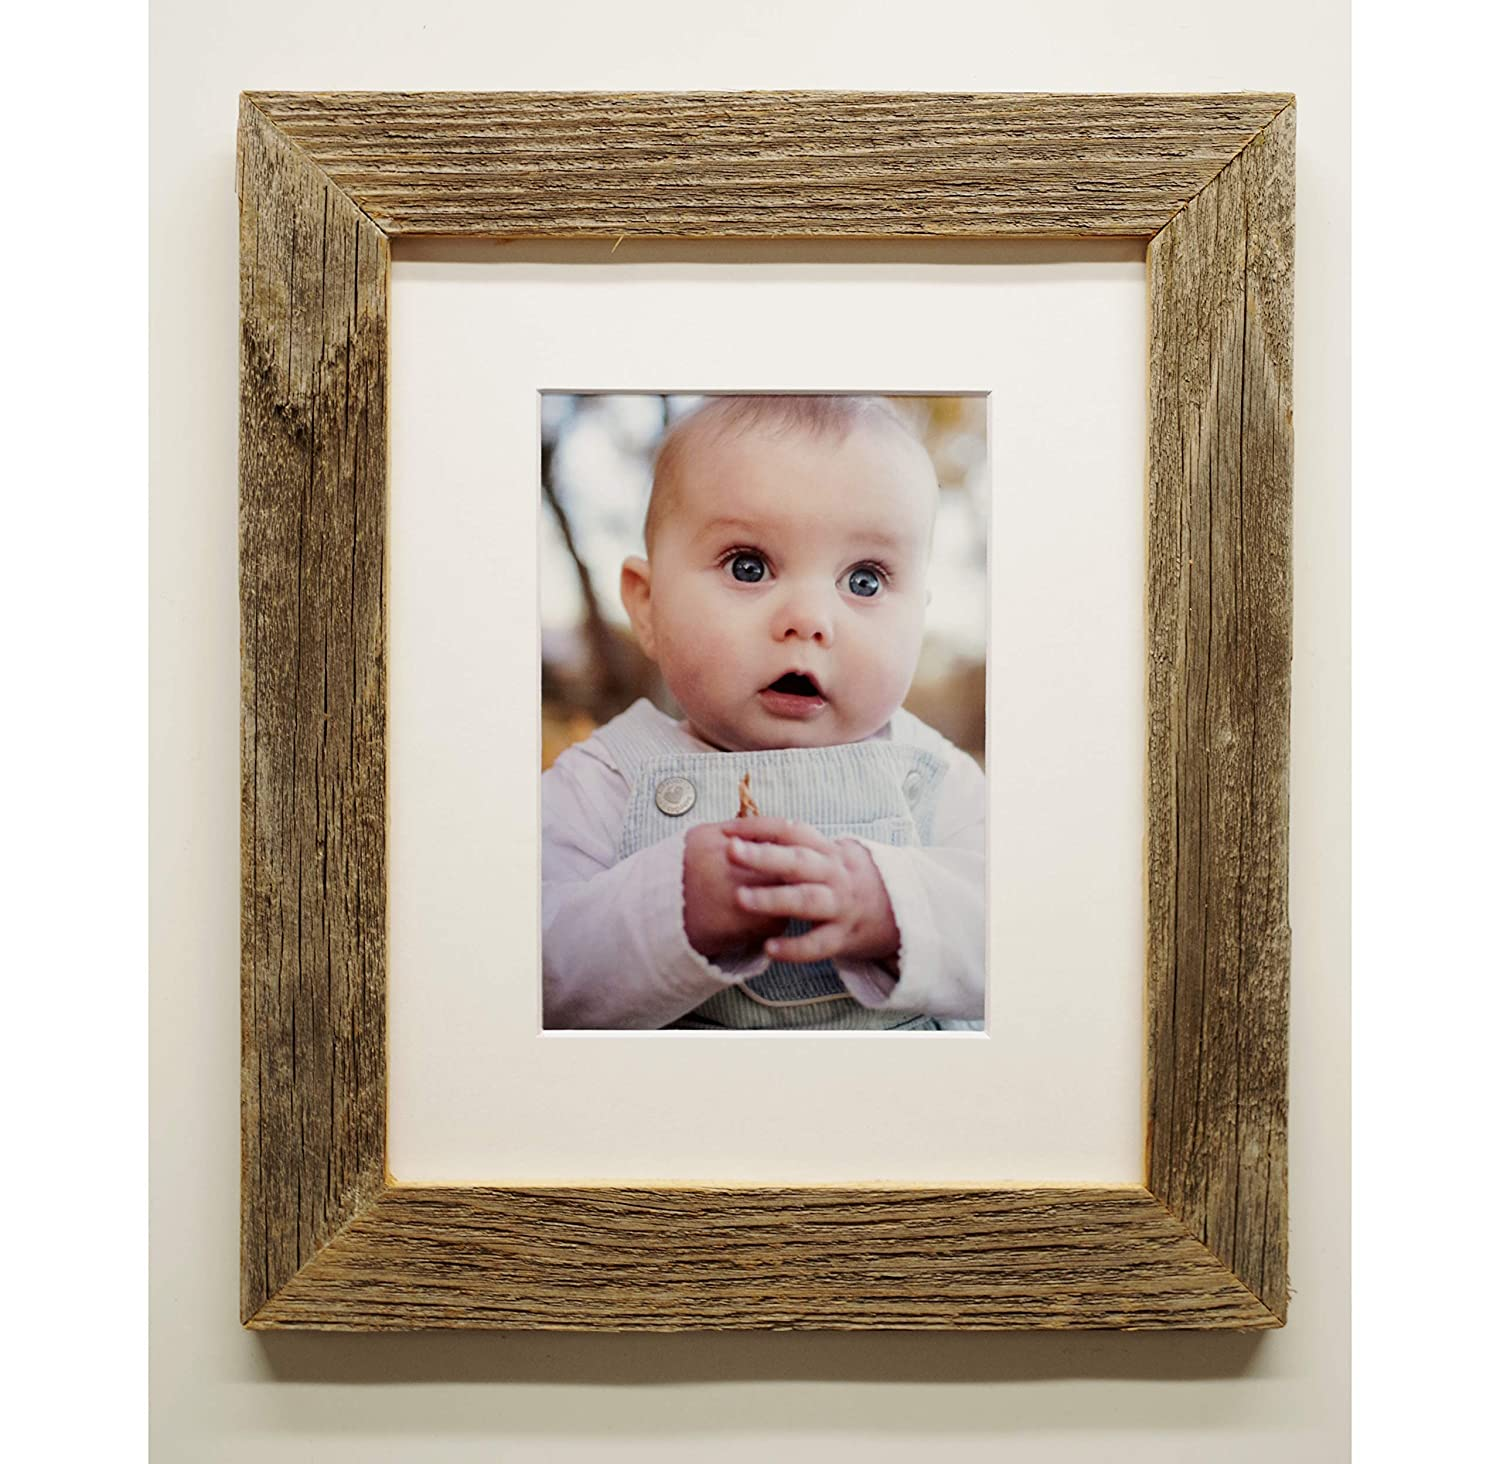 8X10 Barnwood Picture Frame- Narrow (1.5 Inch) Rustic Barn Wood Frames, Reclaimed Wooden Photo Frames, Naturally Aged Old Weathered Wood Frames.